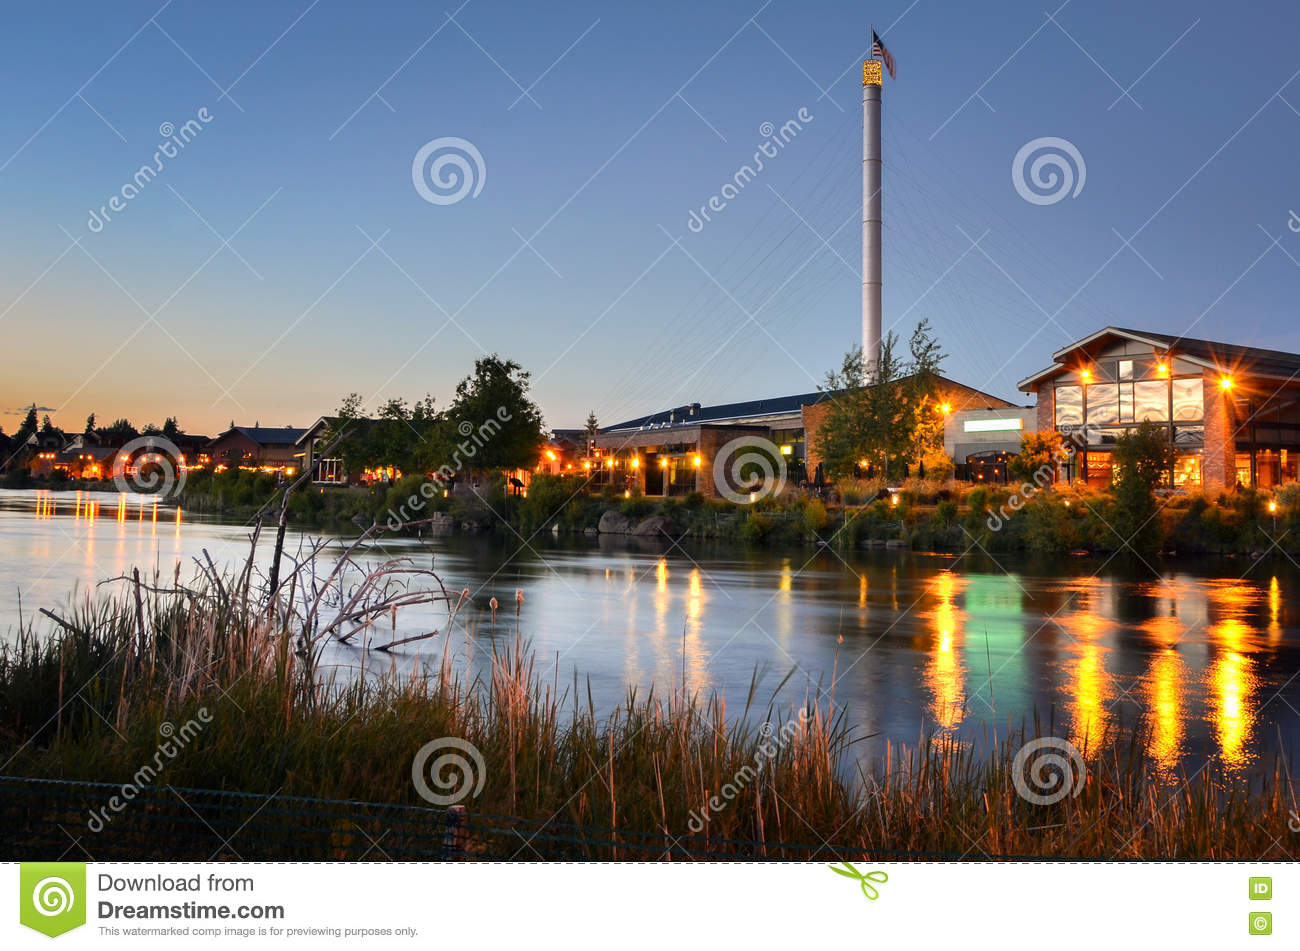 Renovated Buildings alongside a River at Twilight